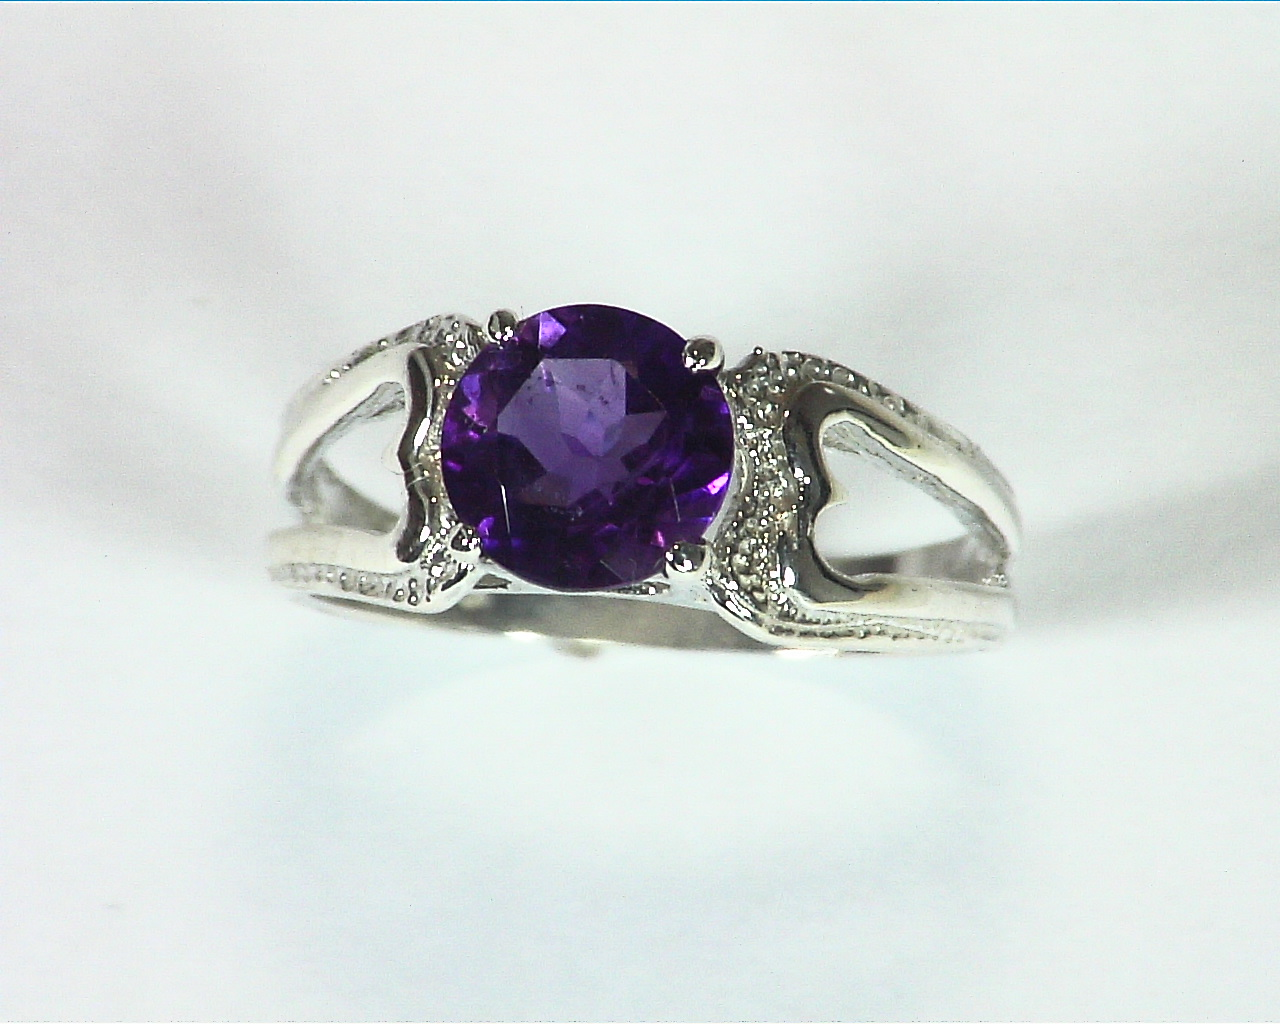 Amethyst Natural Genuine Gemstone Sterling Silver Ring RSS,350